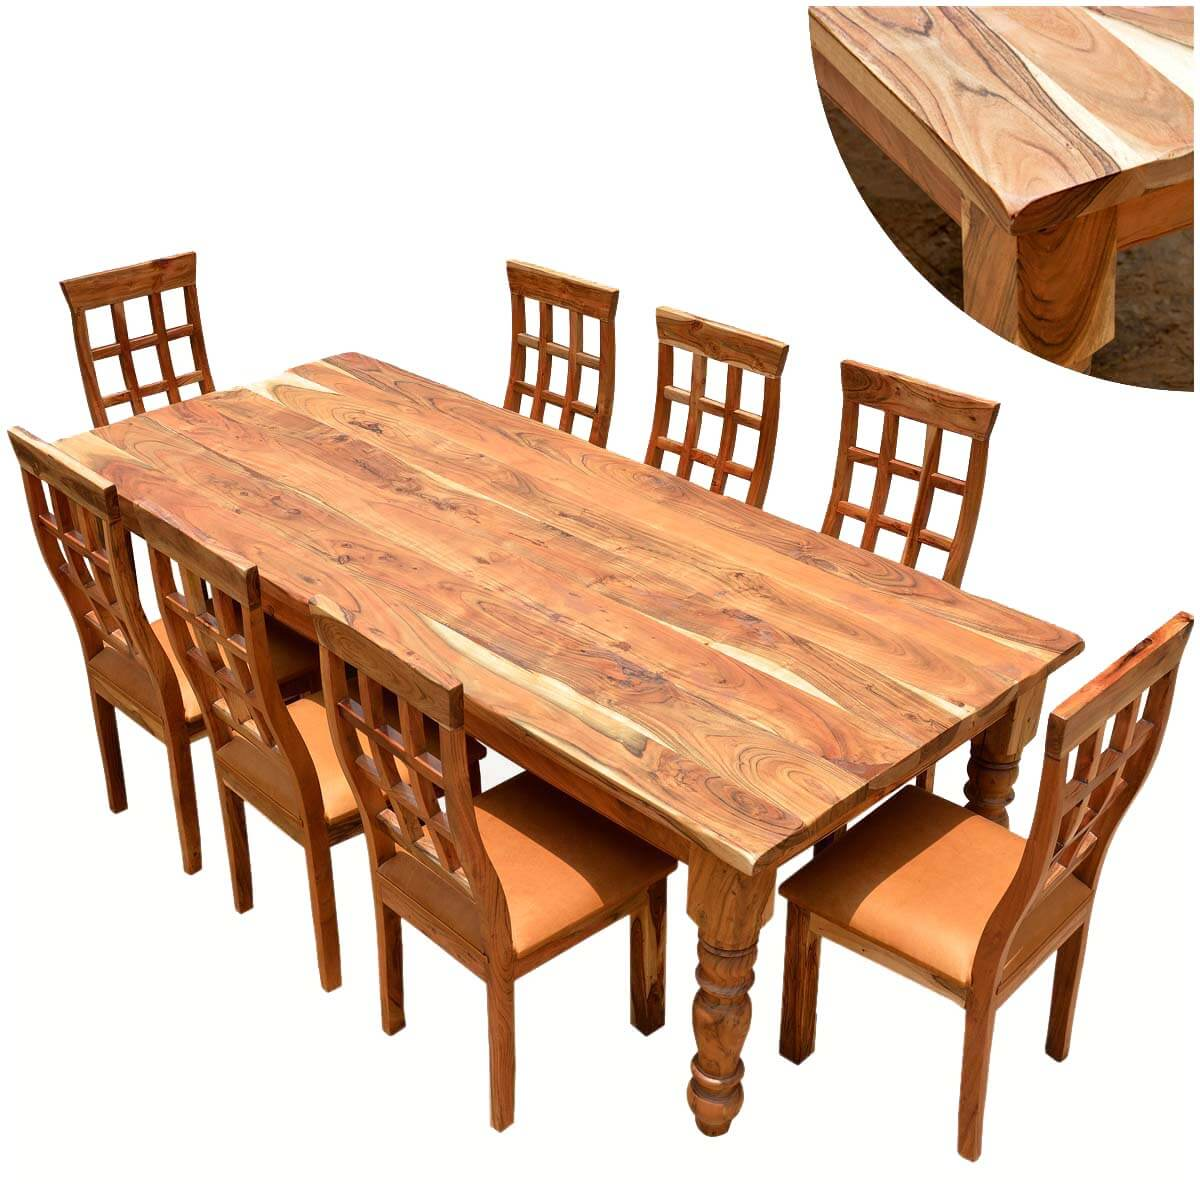 Rustic furniture farmhouse solid wood dining table chair set for Oak farmhouse kitchen table and chairs